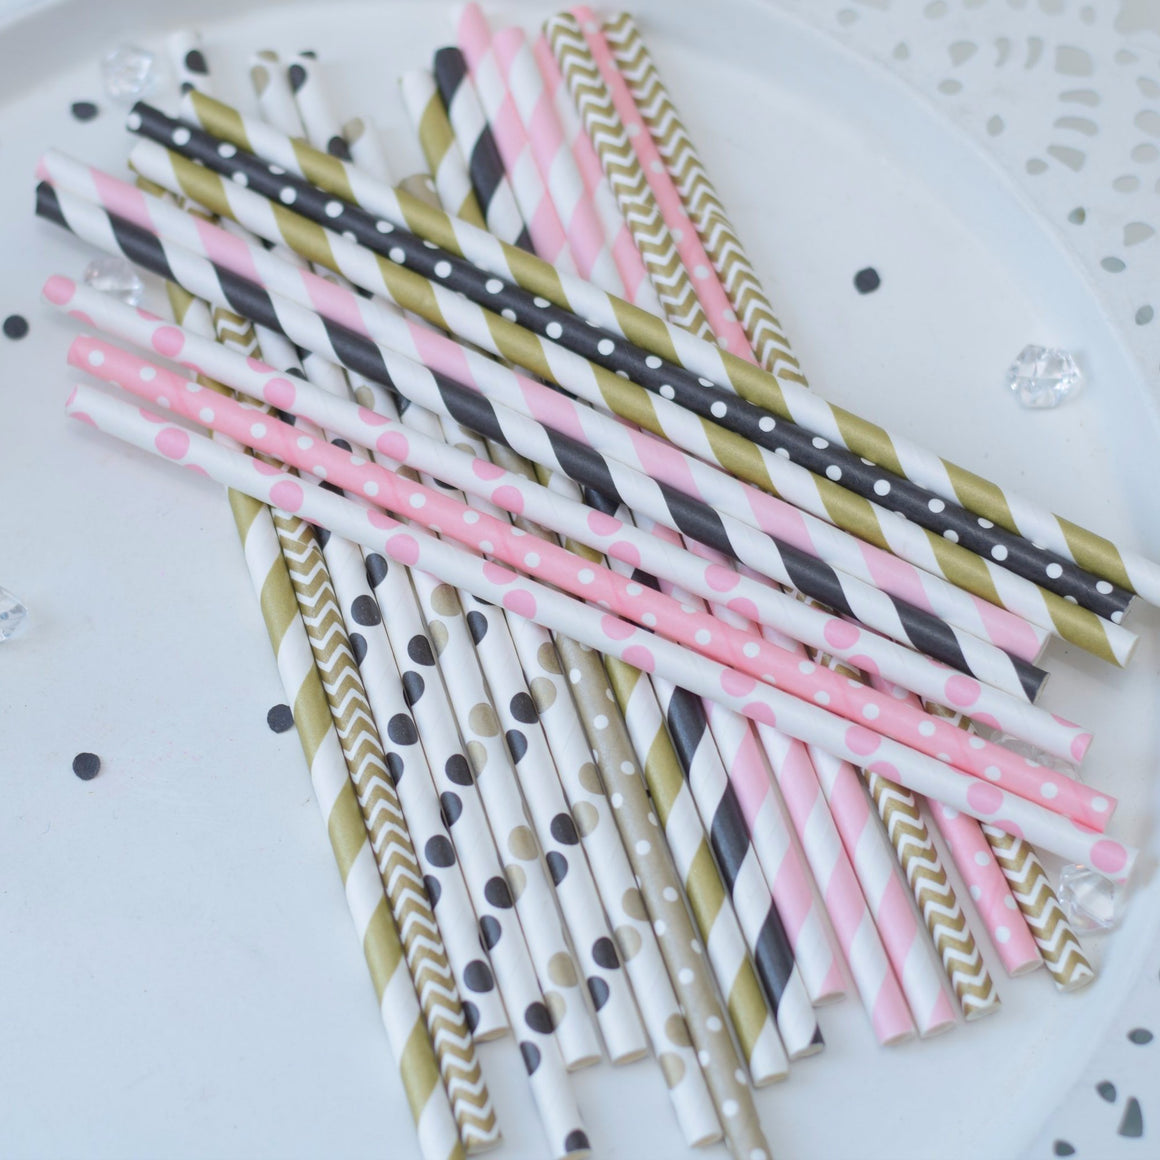 pink and white, black and white, gold and white straws